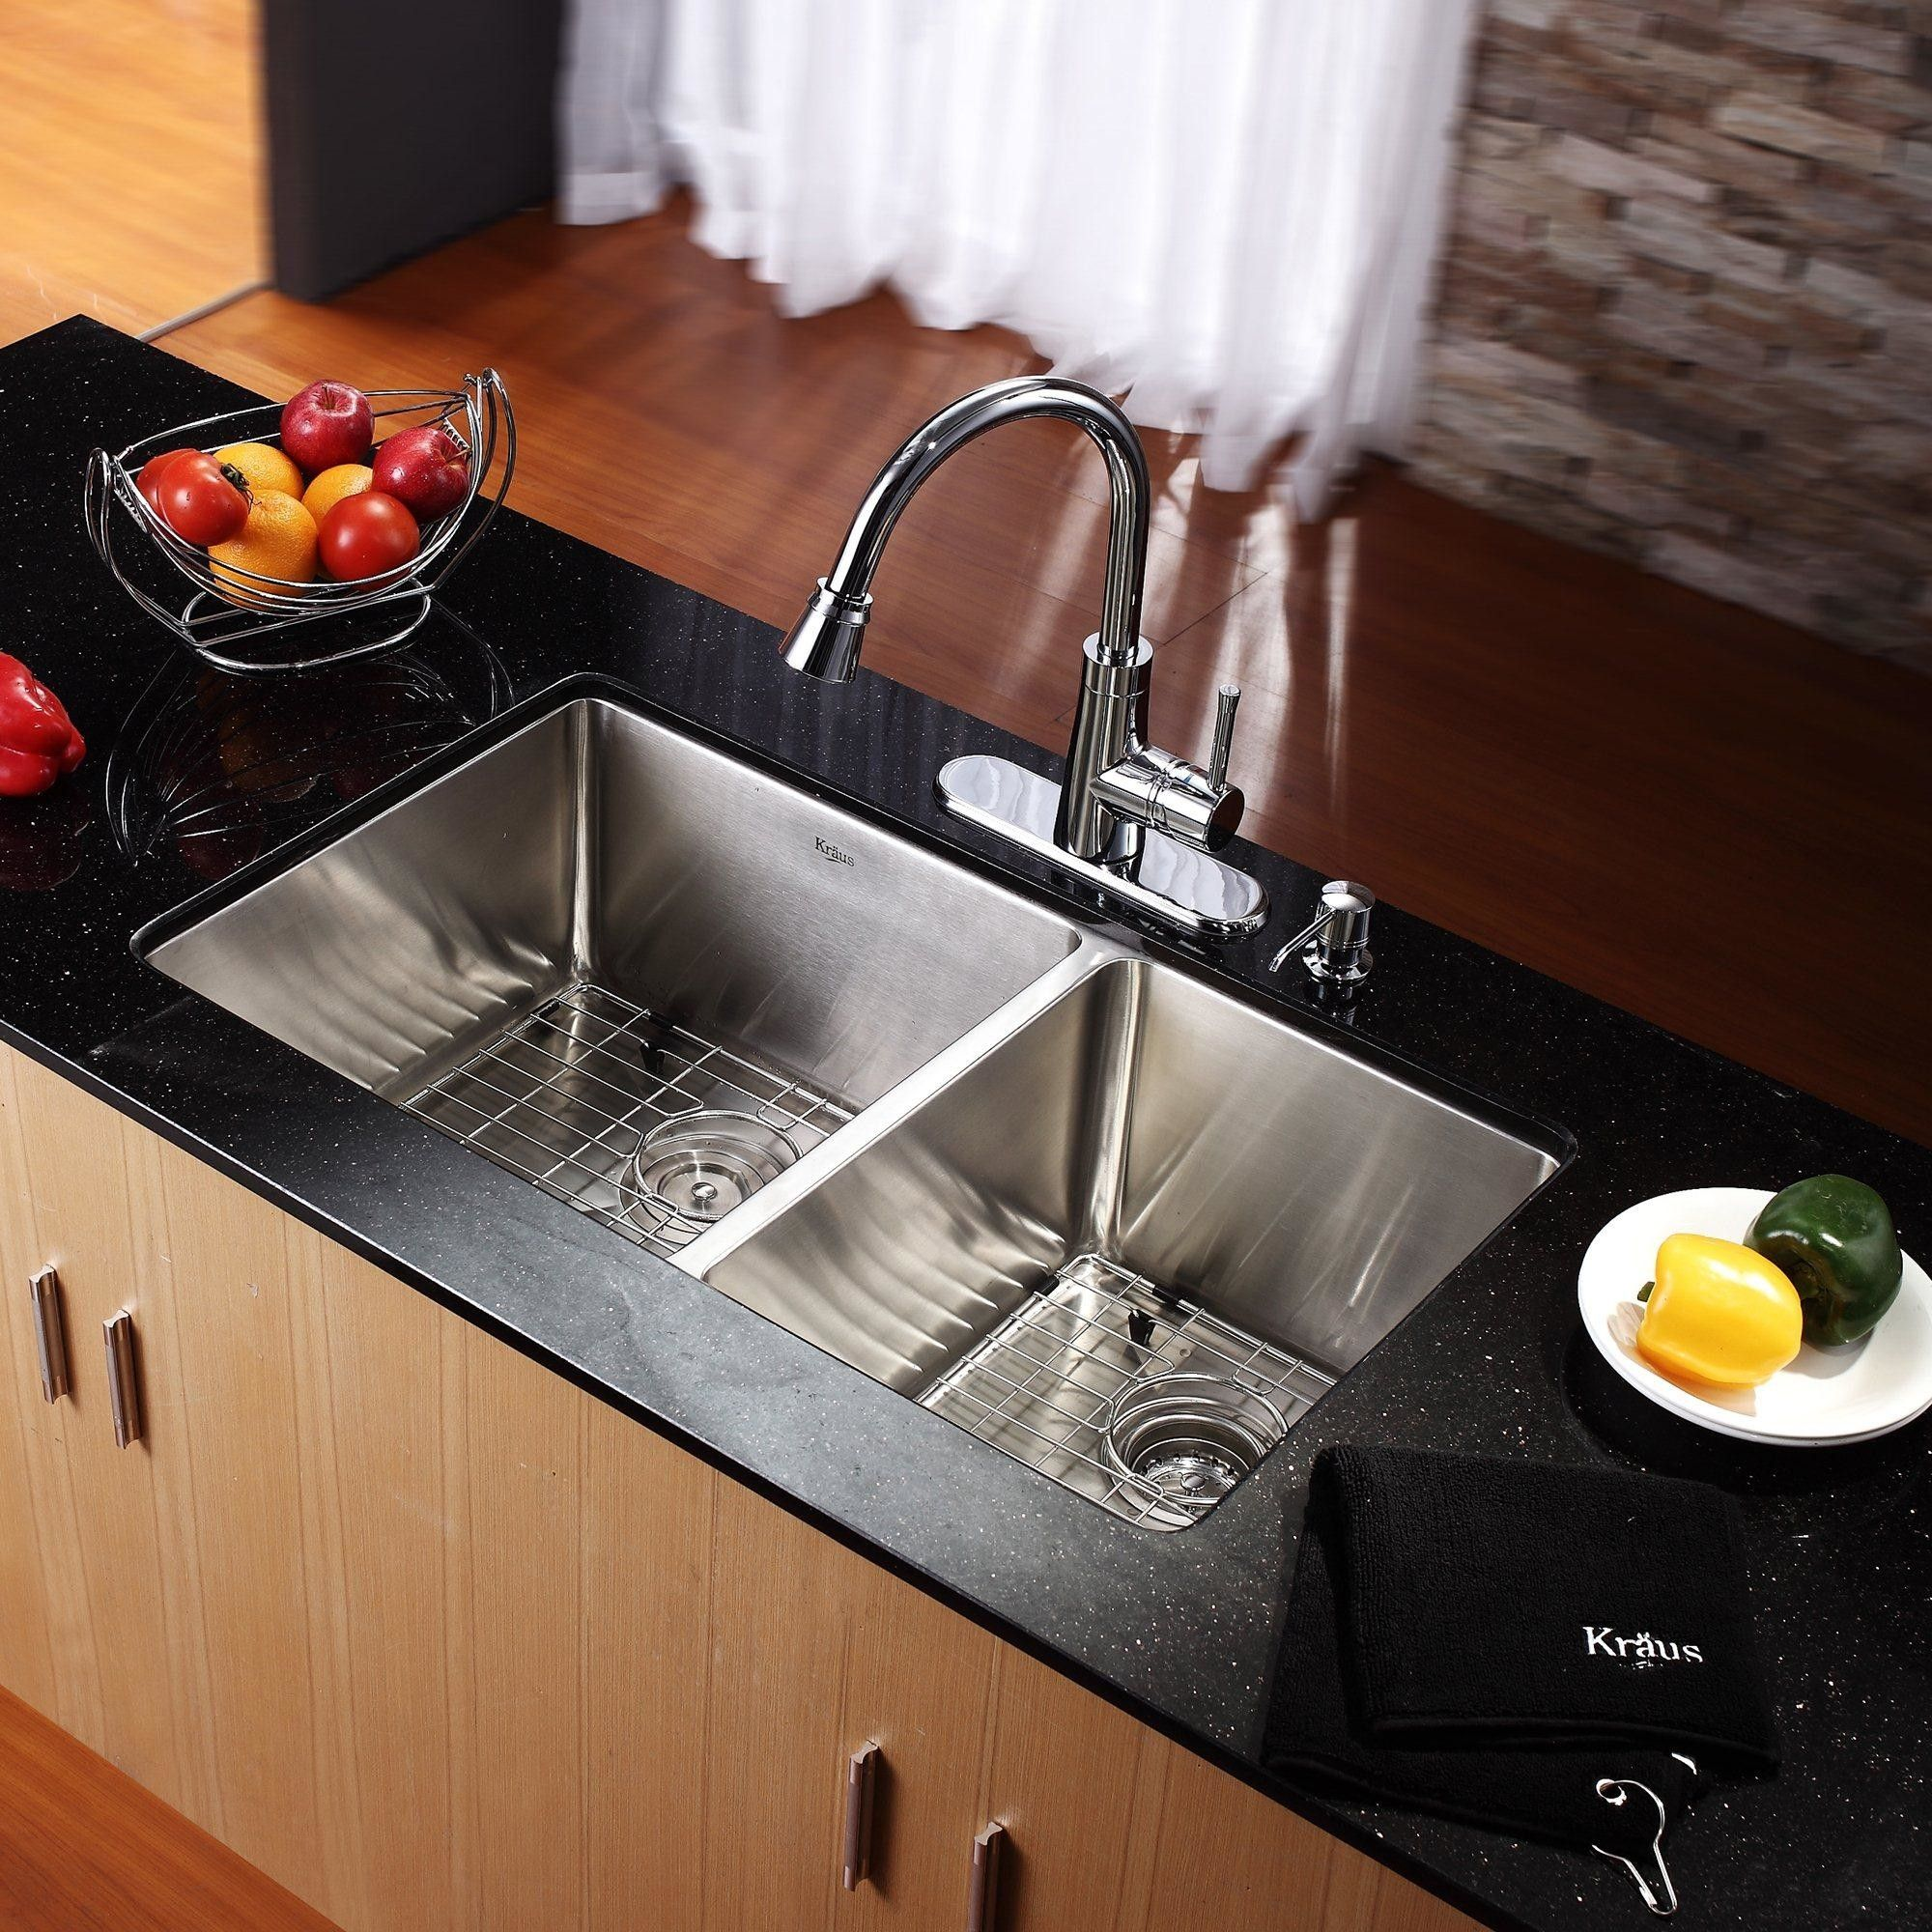 Combo 32 75 X 19 Double Bowl Undermount Kitchen Sink With Faucet